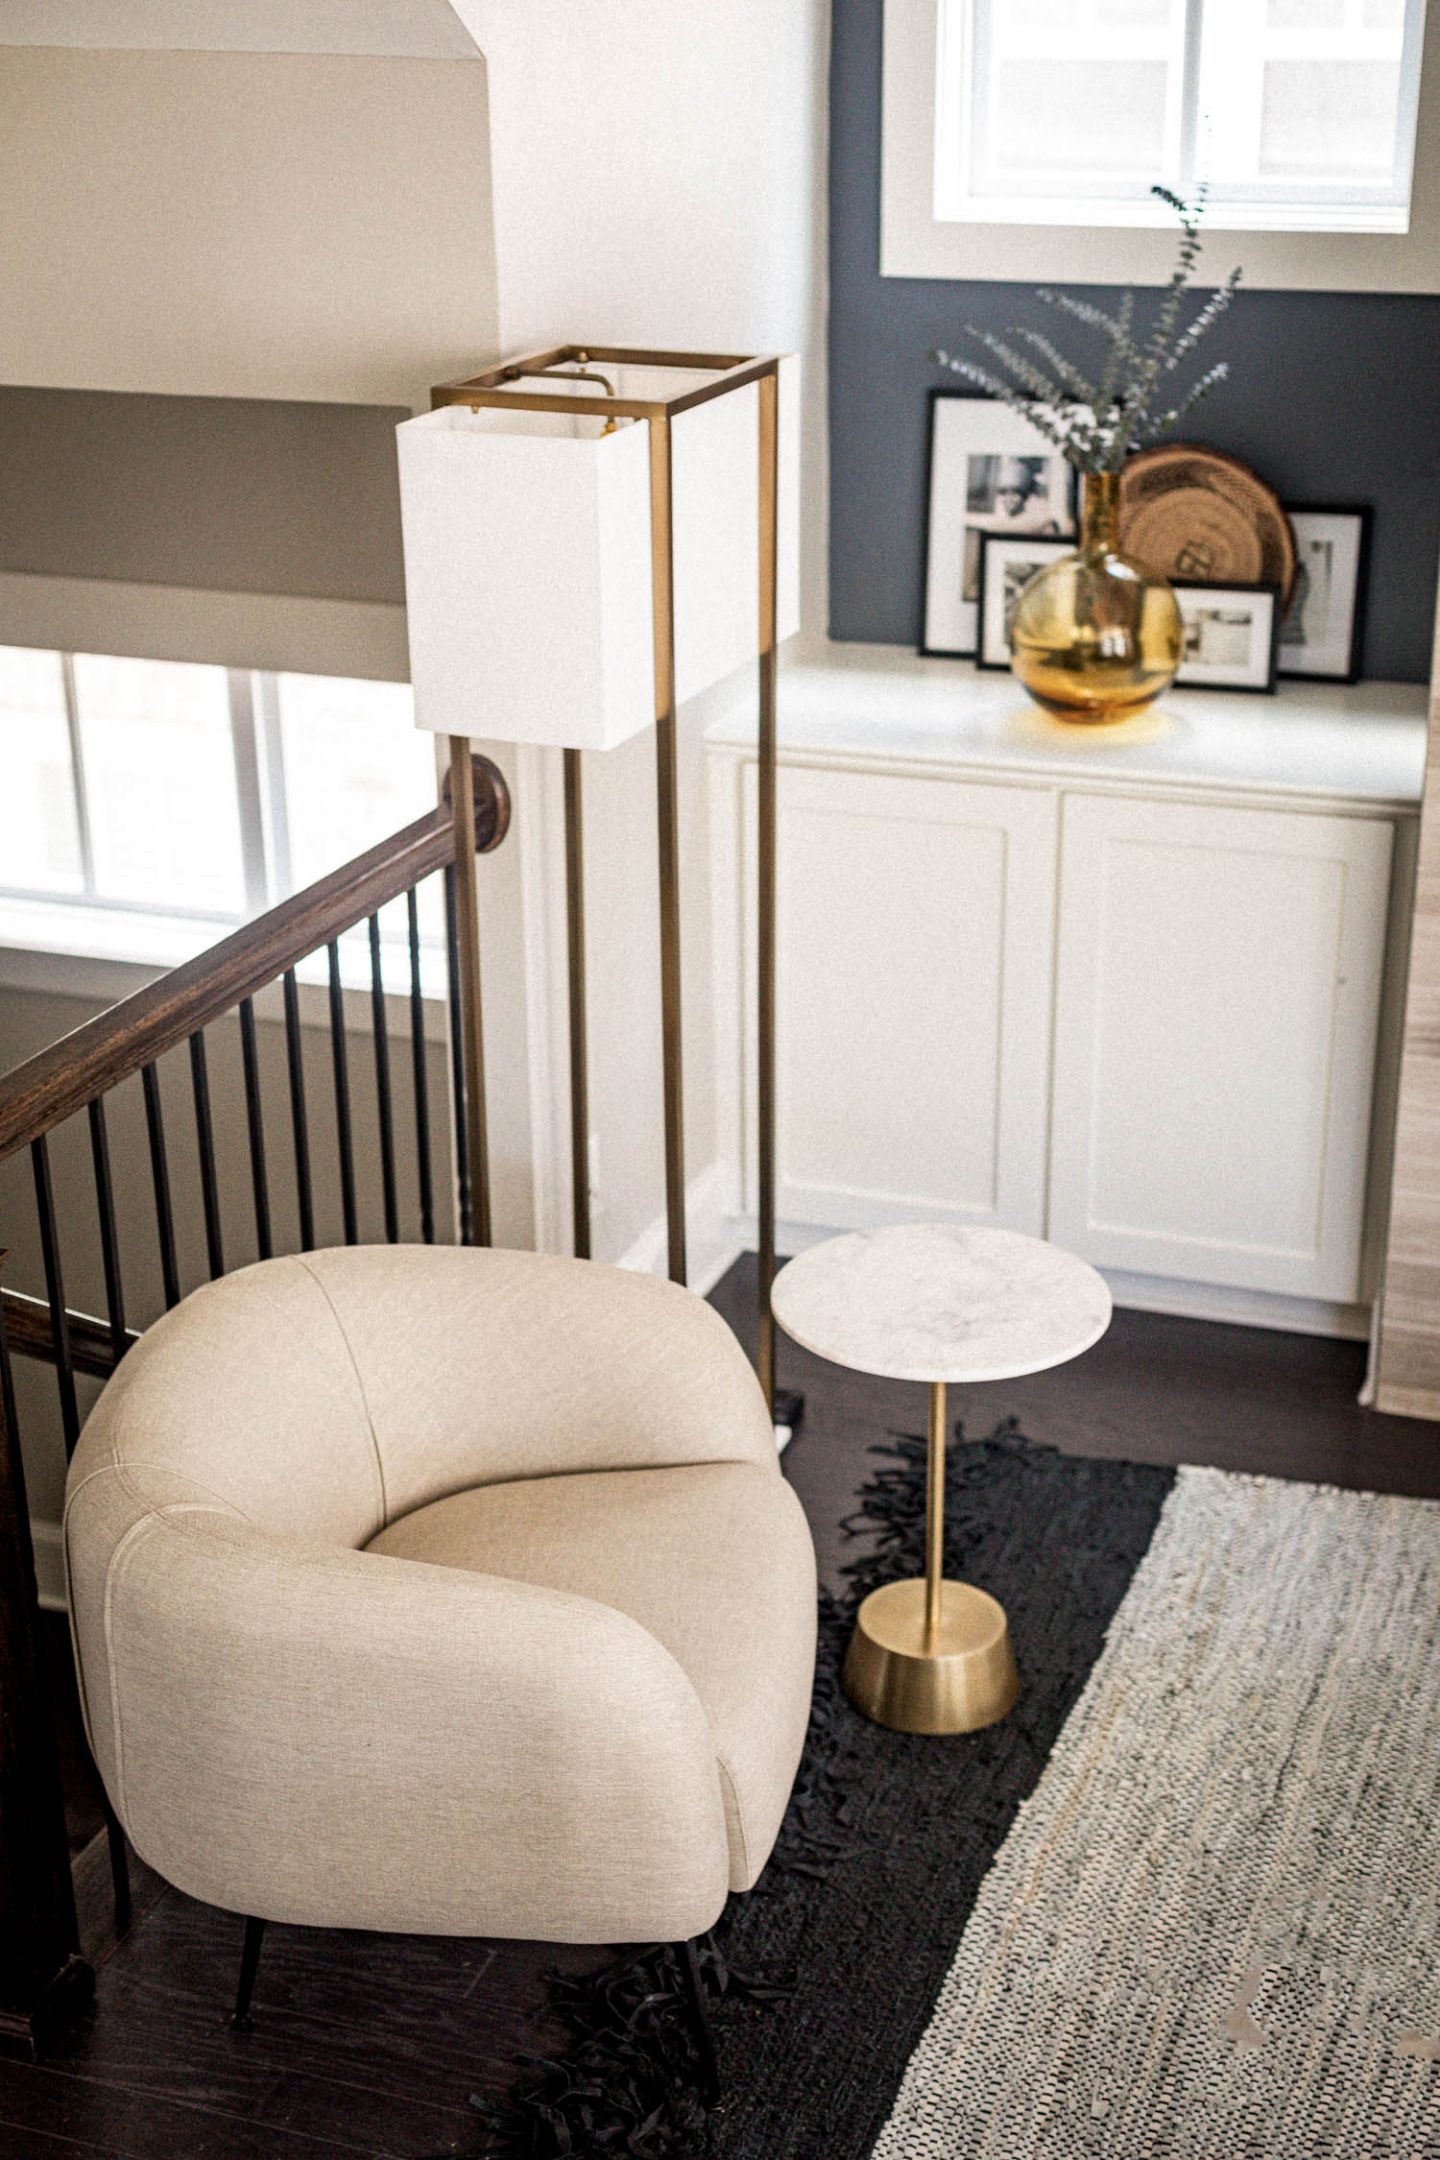 atlanta blogger reveals her new modern living room, living room tour, how to create a modern living room, how to create a minimalist living room, how to create the perfect living room, cream accent chair, marble side table, marble standing lamp, accent chairs